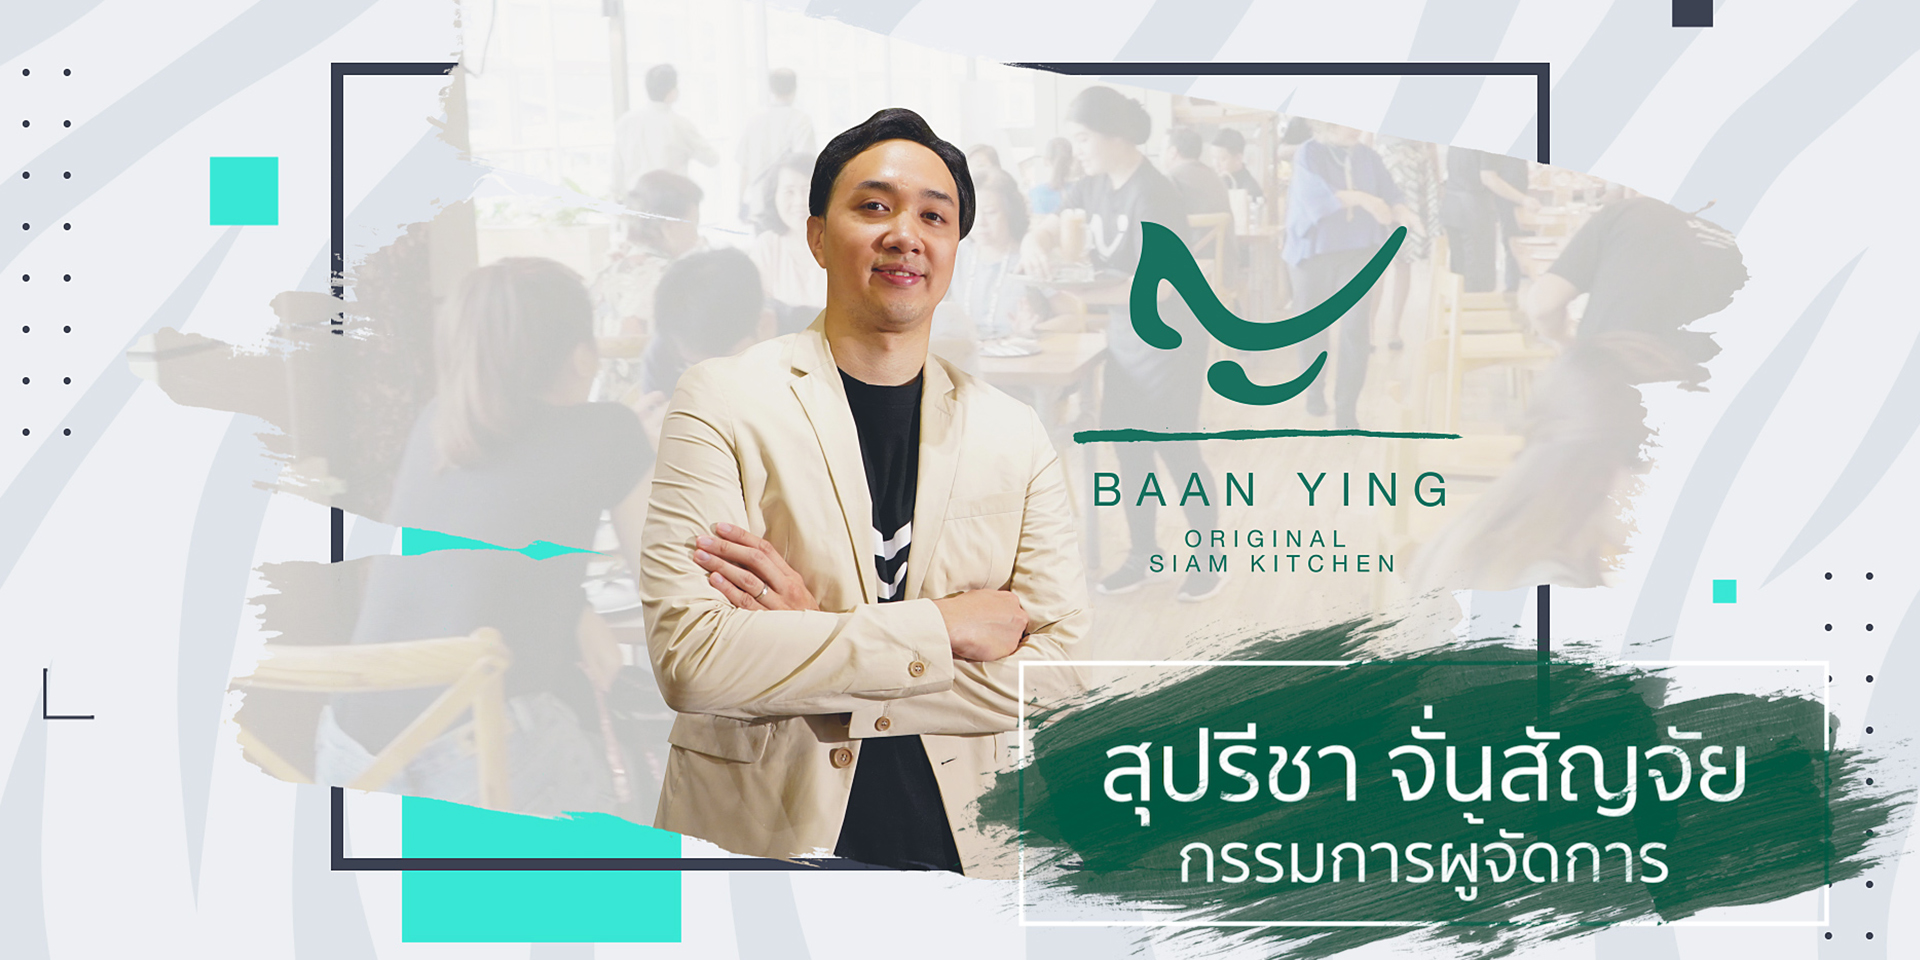 Baan Ying Original Siam Kitchen